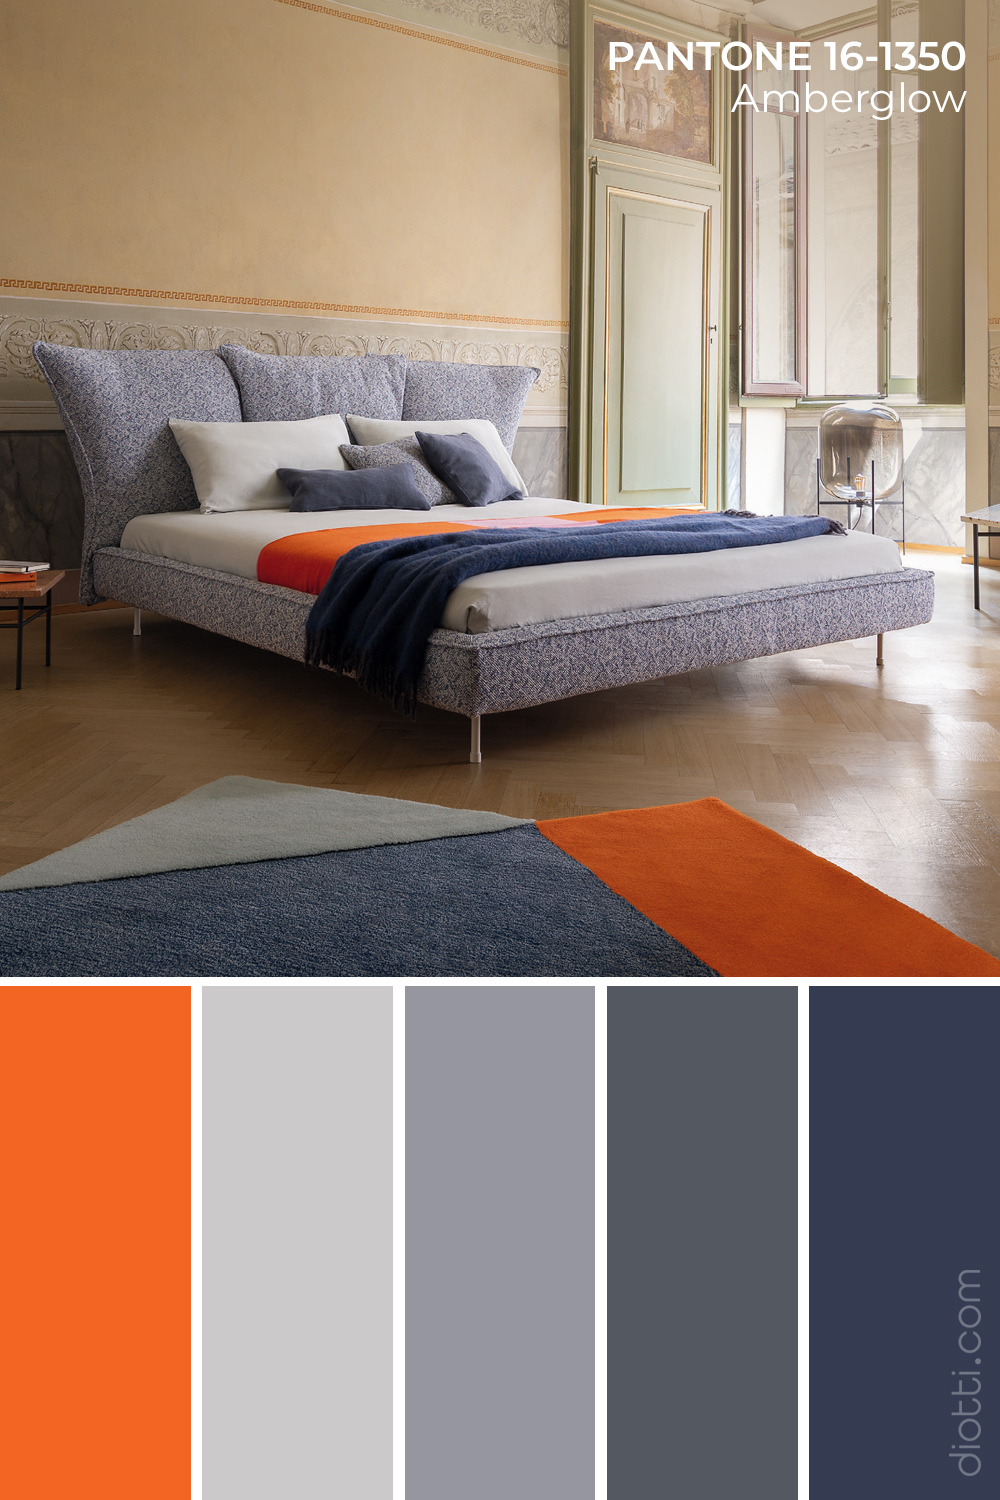 Letto Madame C in Pantone Amberglow